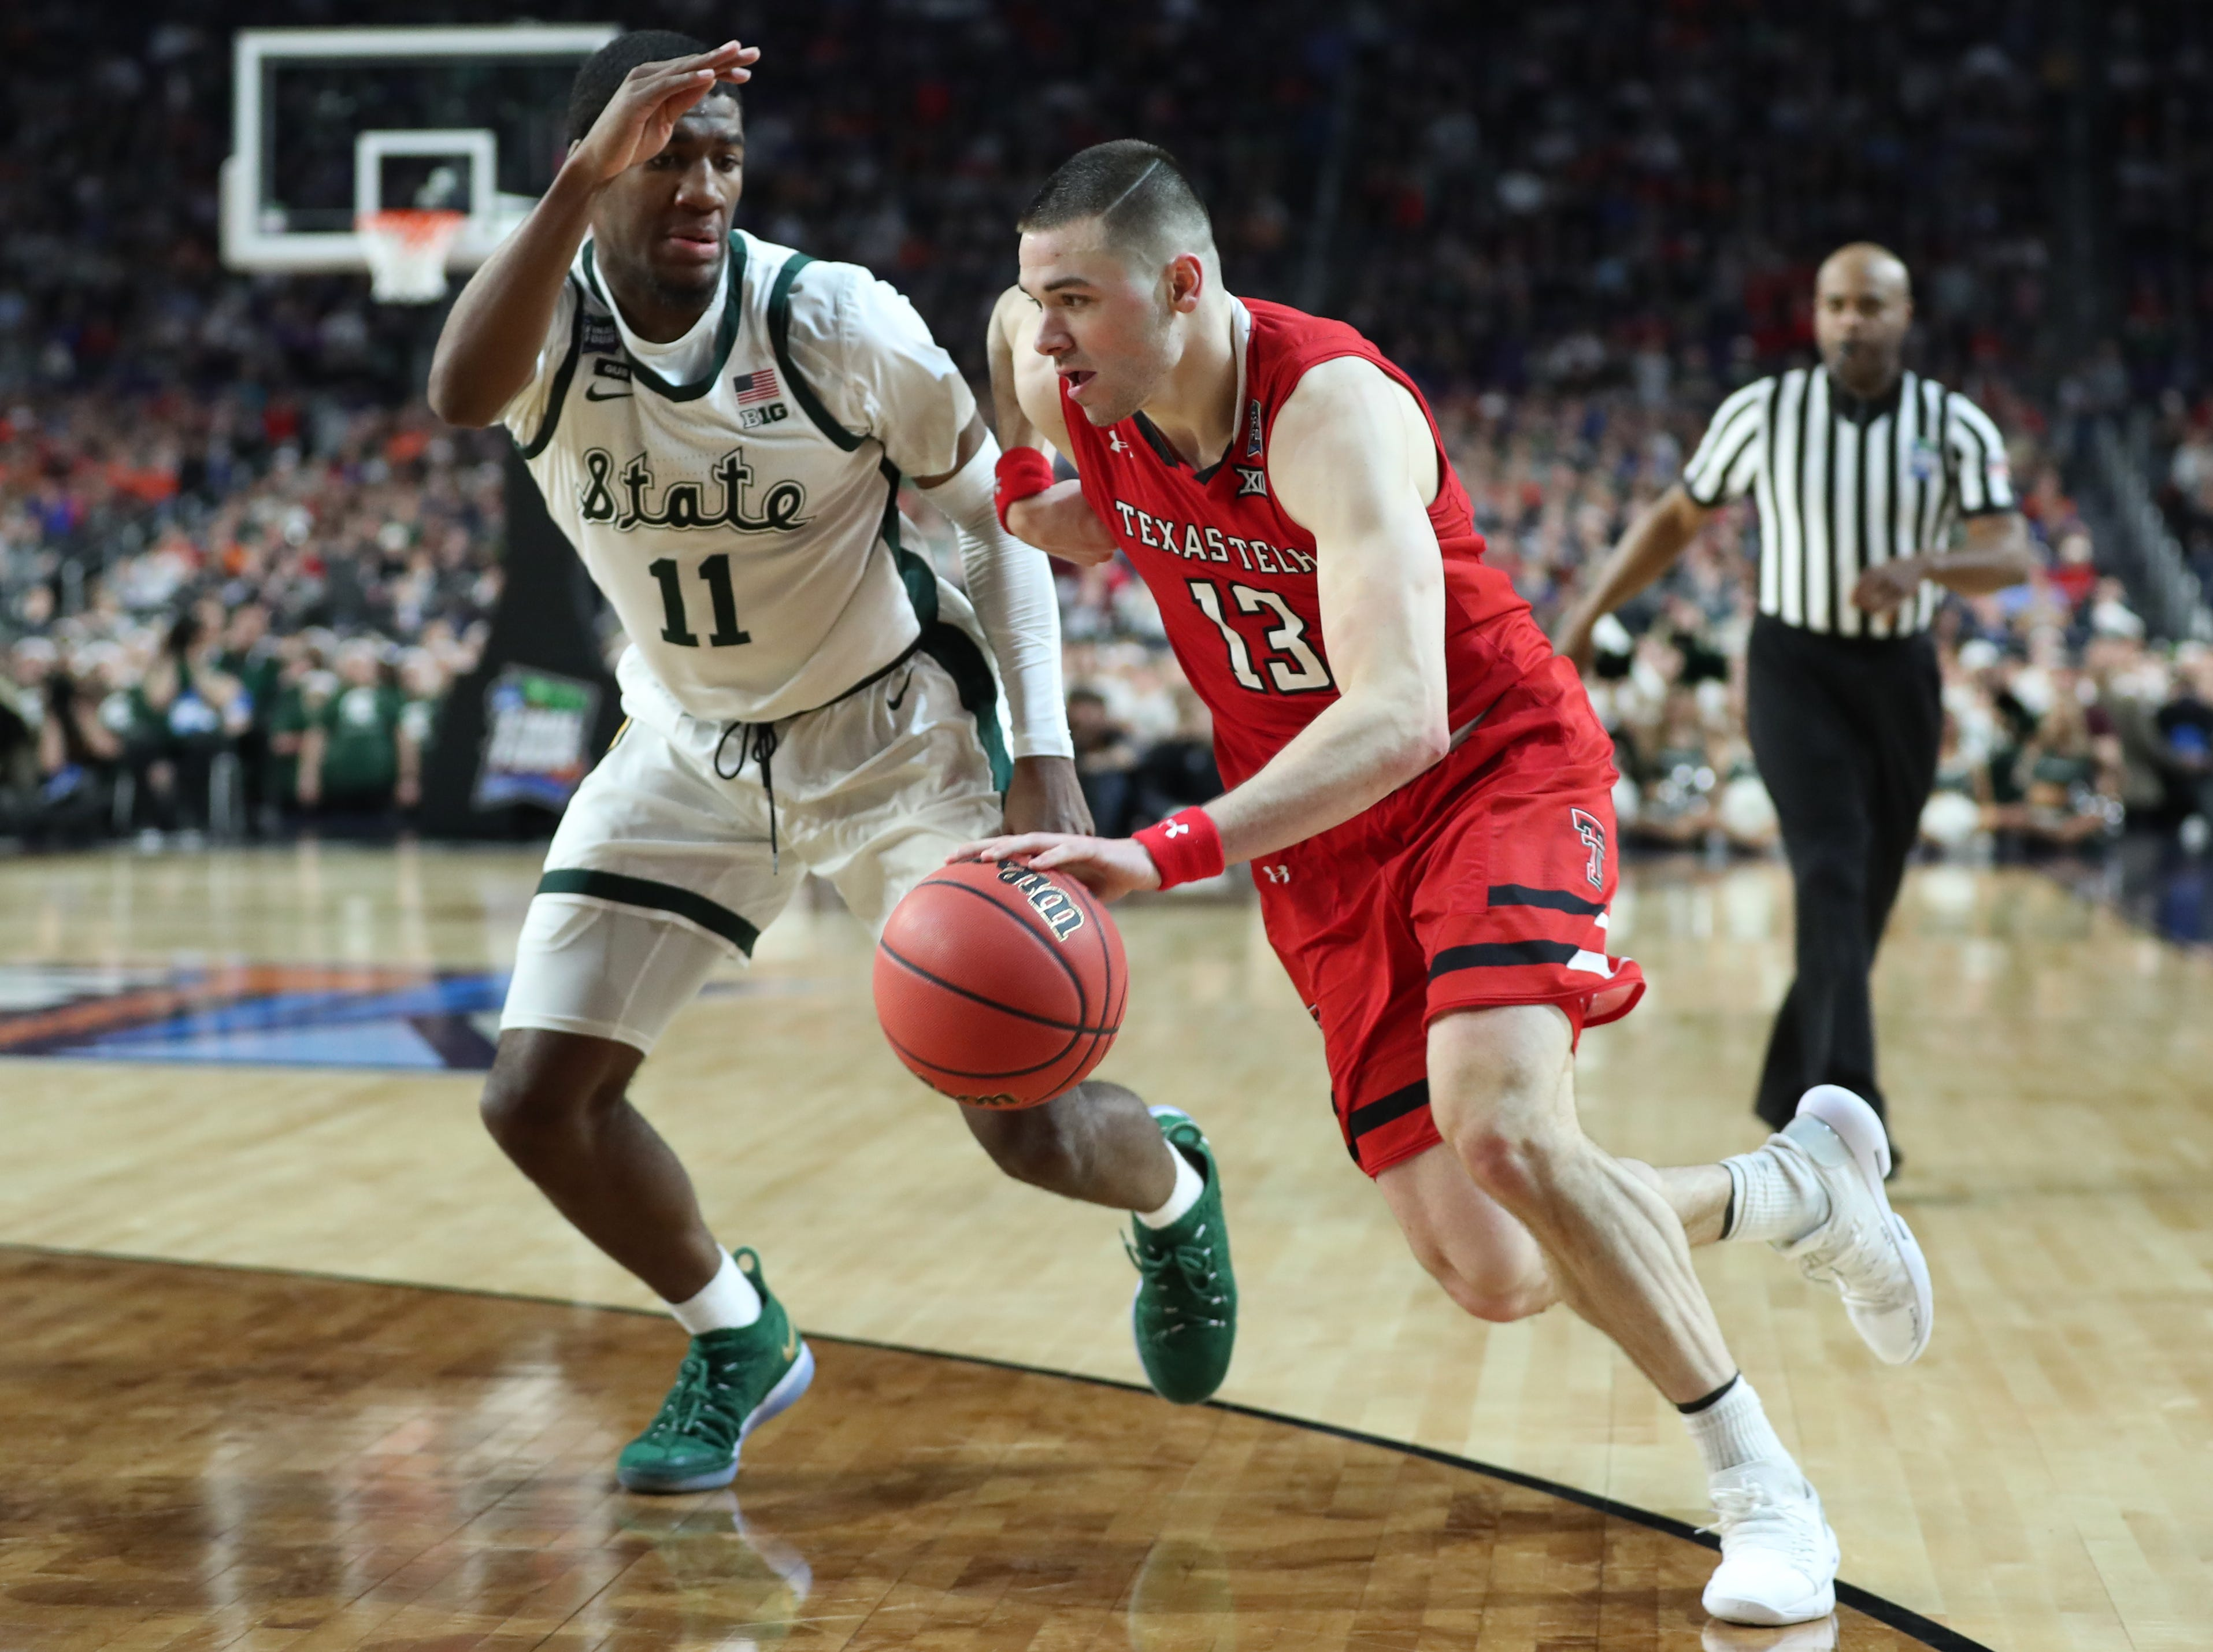 Michigan State forward Aaron Henry (11) guards Texas Tech guard Matt Mooney (13) in the second half of the Final Four game at U.S. Bank Stadium in Minneapolis, Minnesota on Saturday, April 06, 2019.